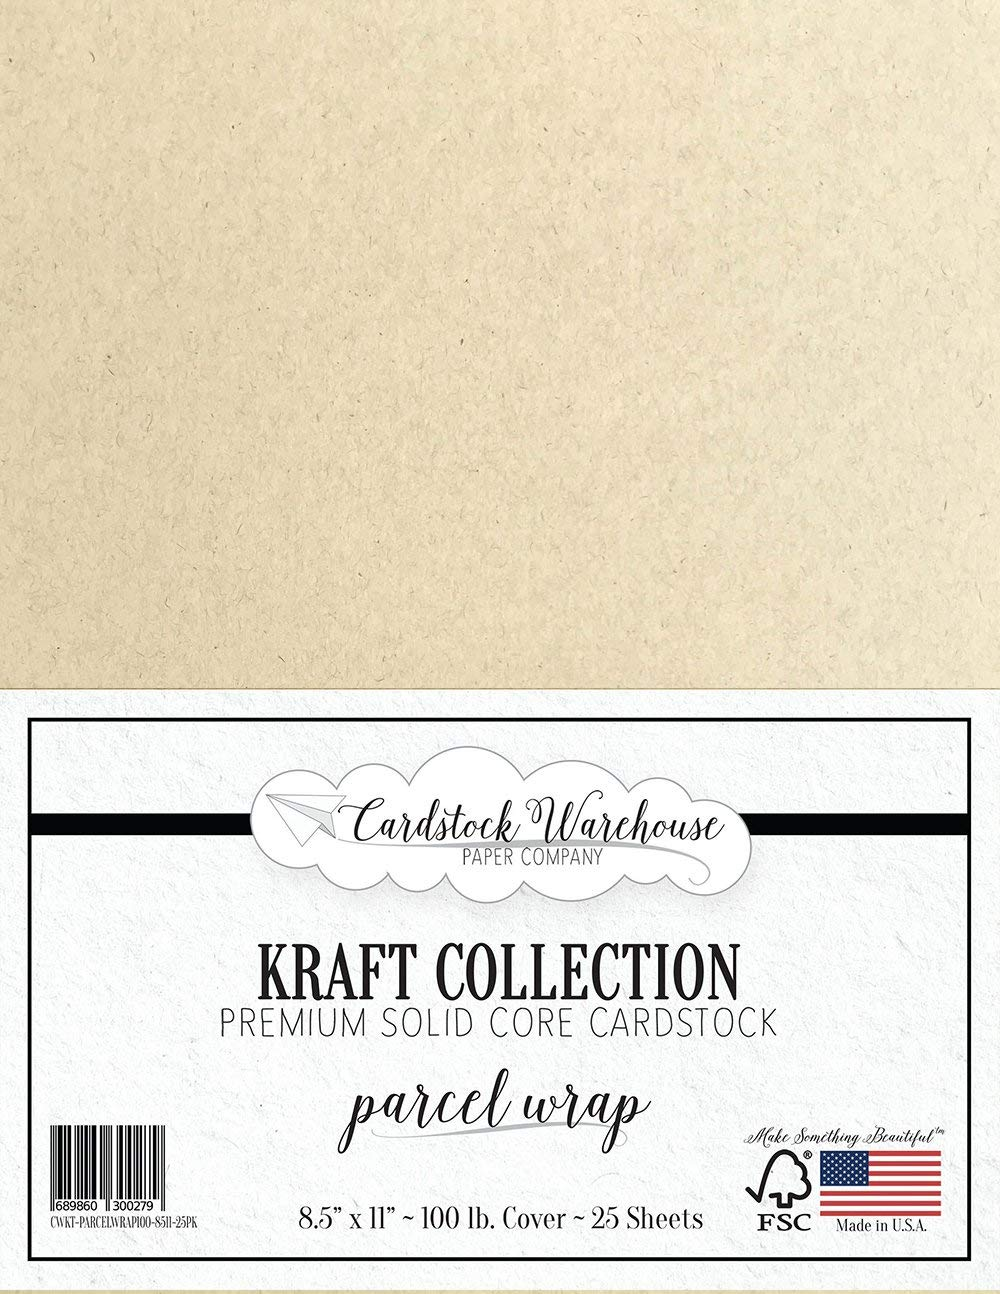 12 x 12 Premium 100 LB Paper Bag Kraft Recycled Cardstock 25 Sheets from Cardstock Warehouse Cover